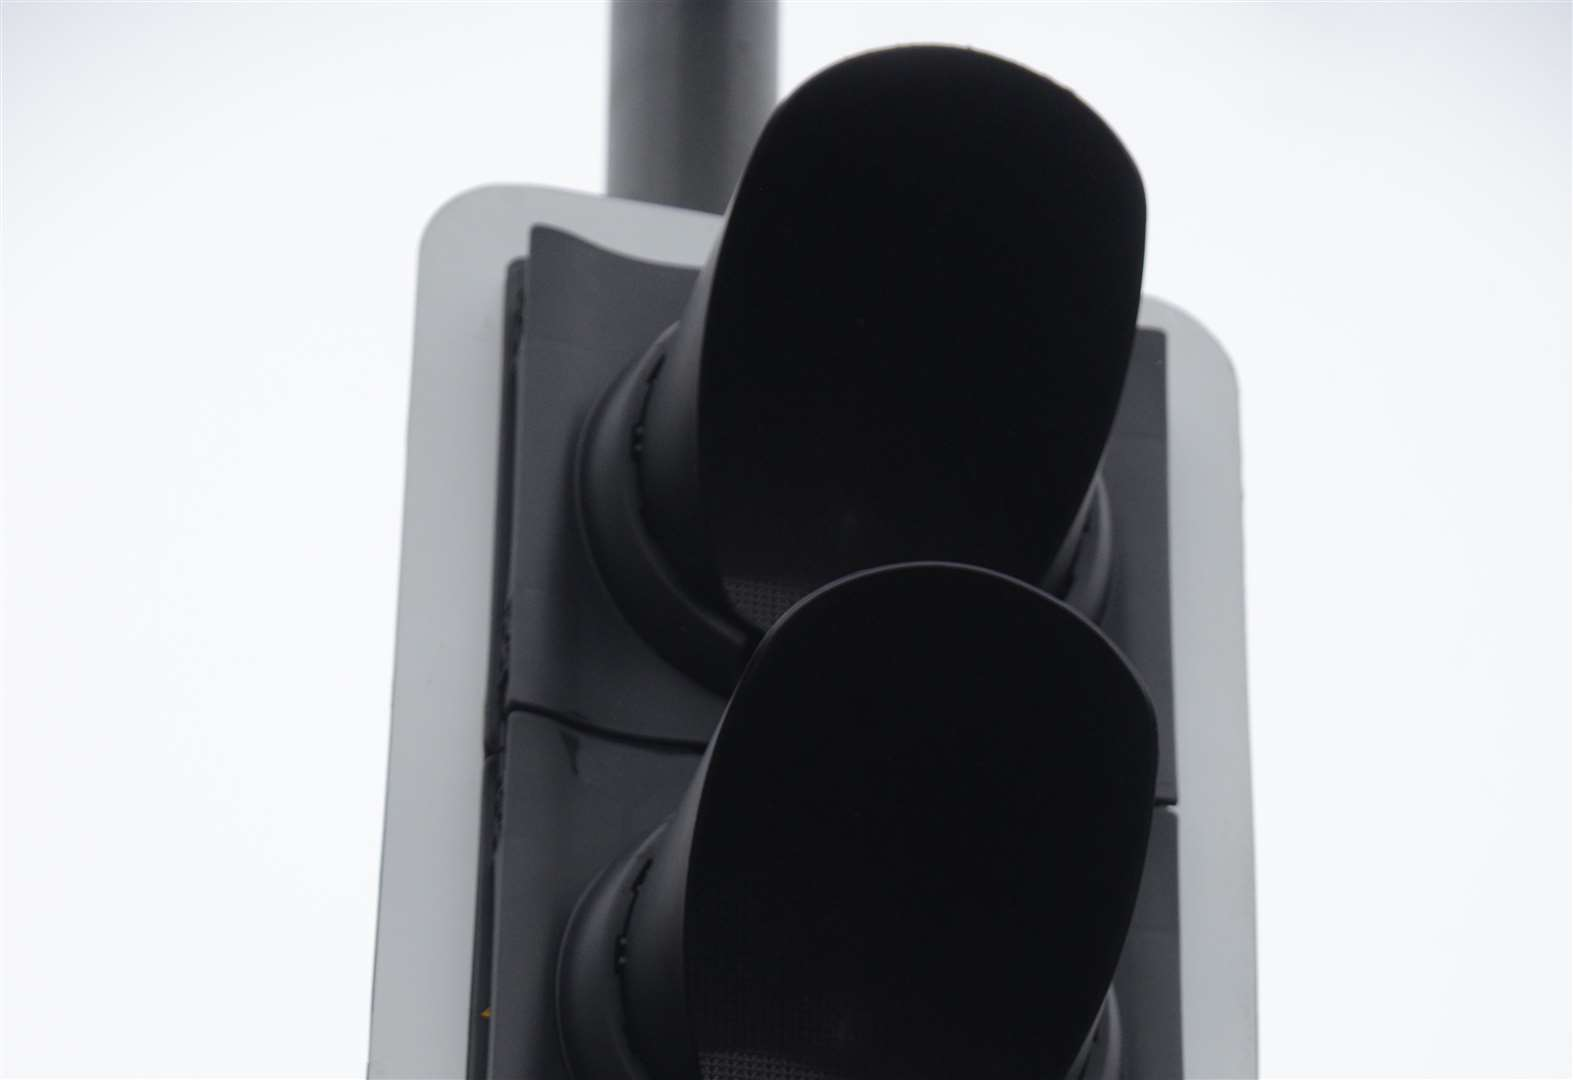 Traffic lights out on busy road